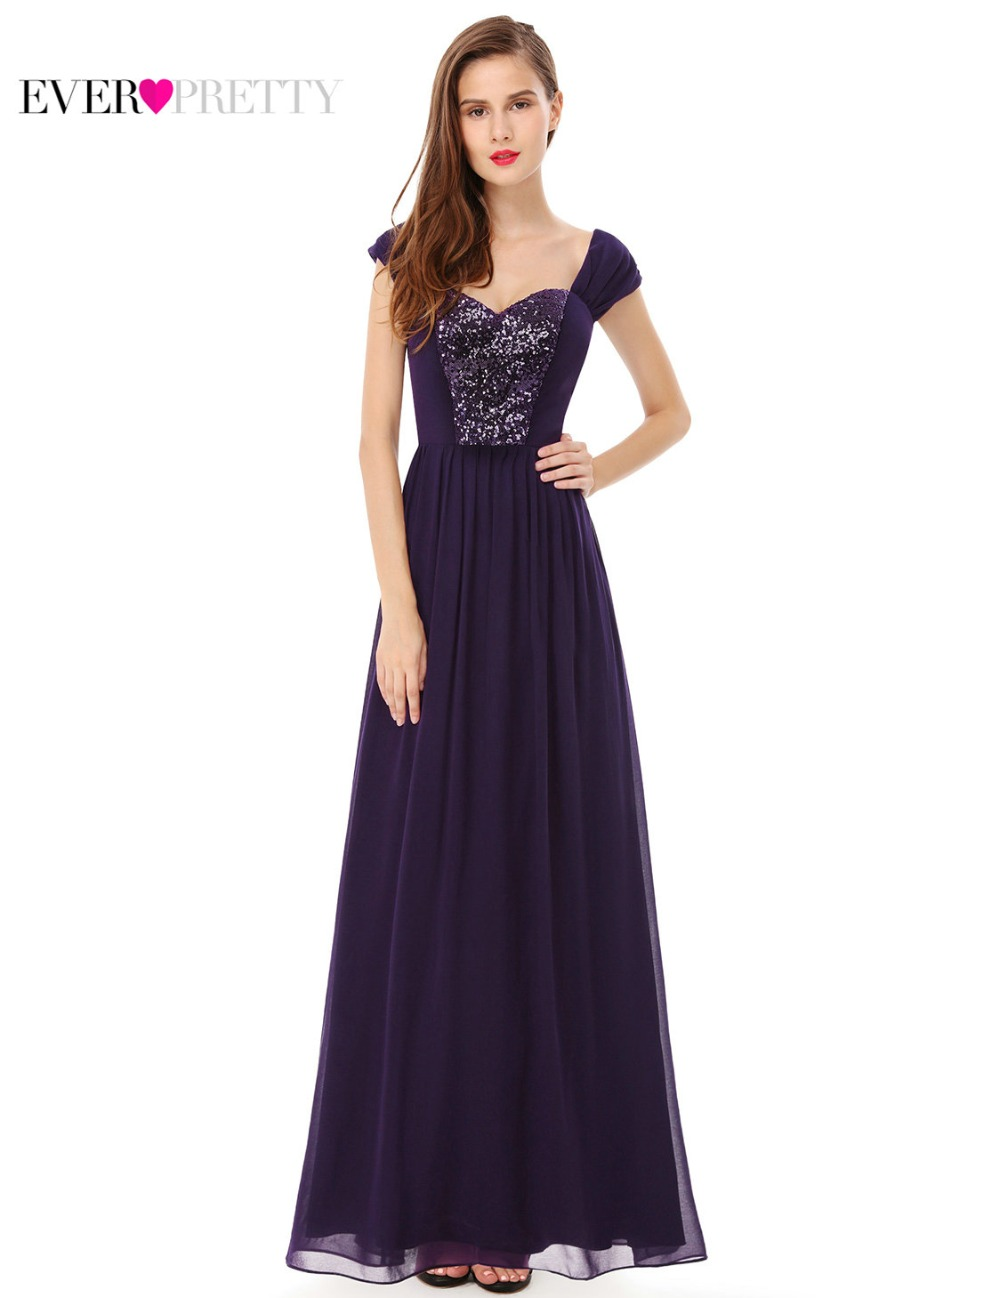 Shop our Collection of cheap long skirts for women at xianggangdishini.gq for the Latest Styles. Free shipping available for orders with more than three long skirts.